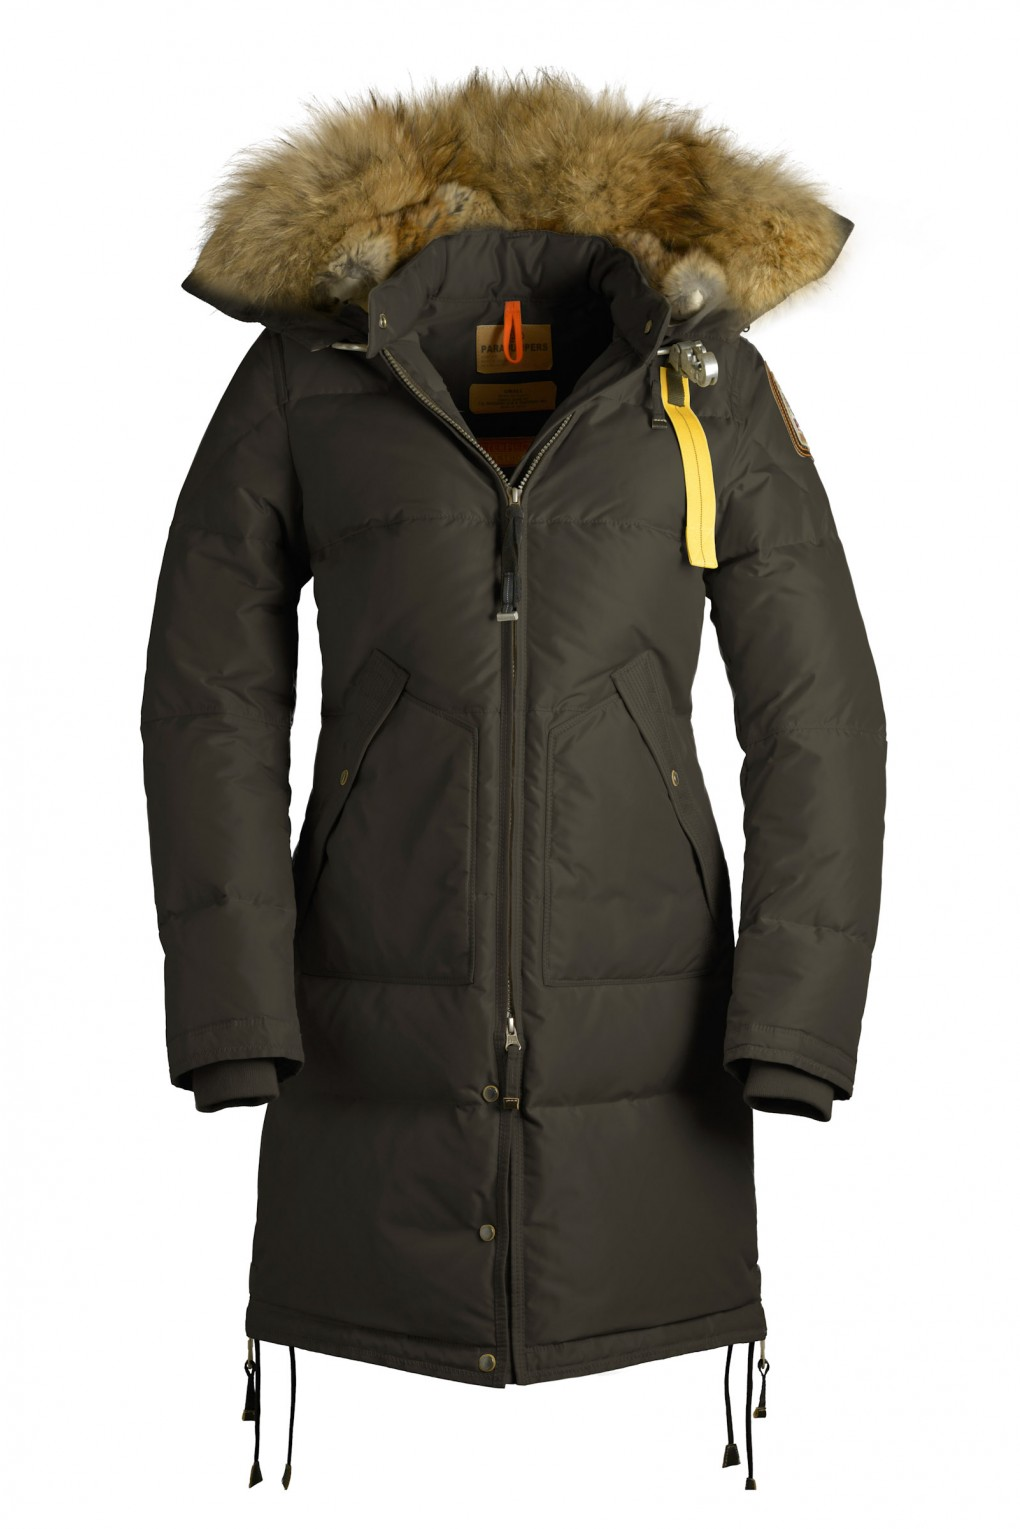 parajumpers LONG BEAR woman outerwear Olive